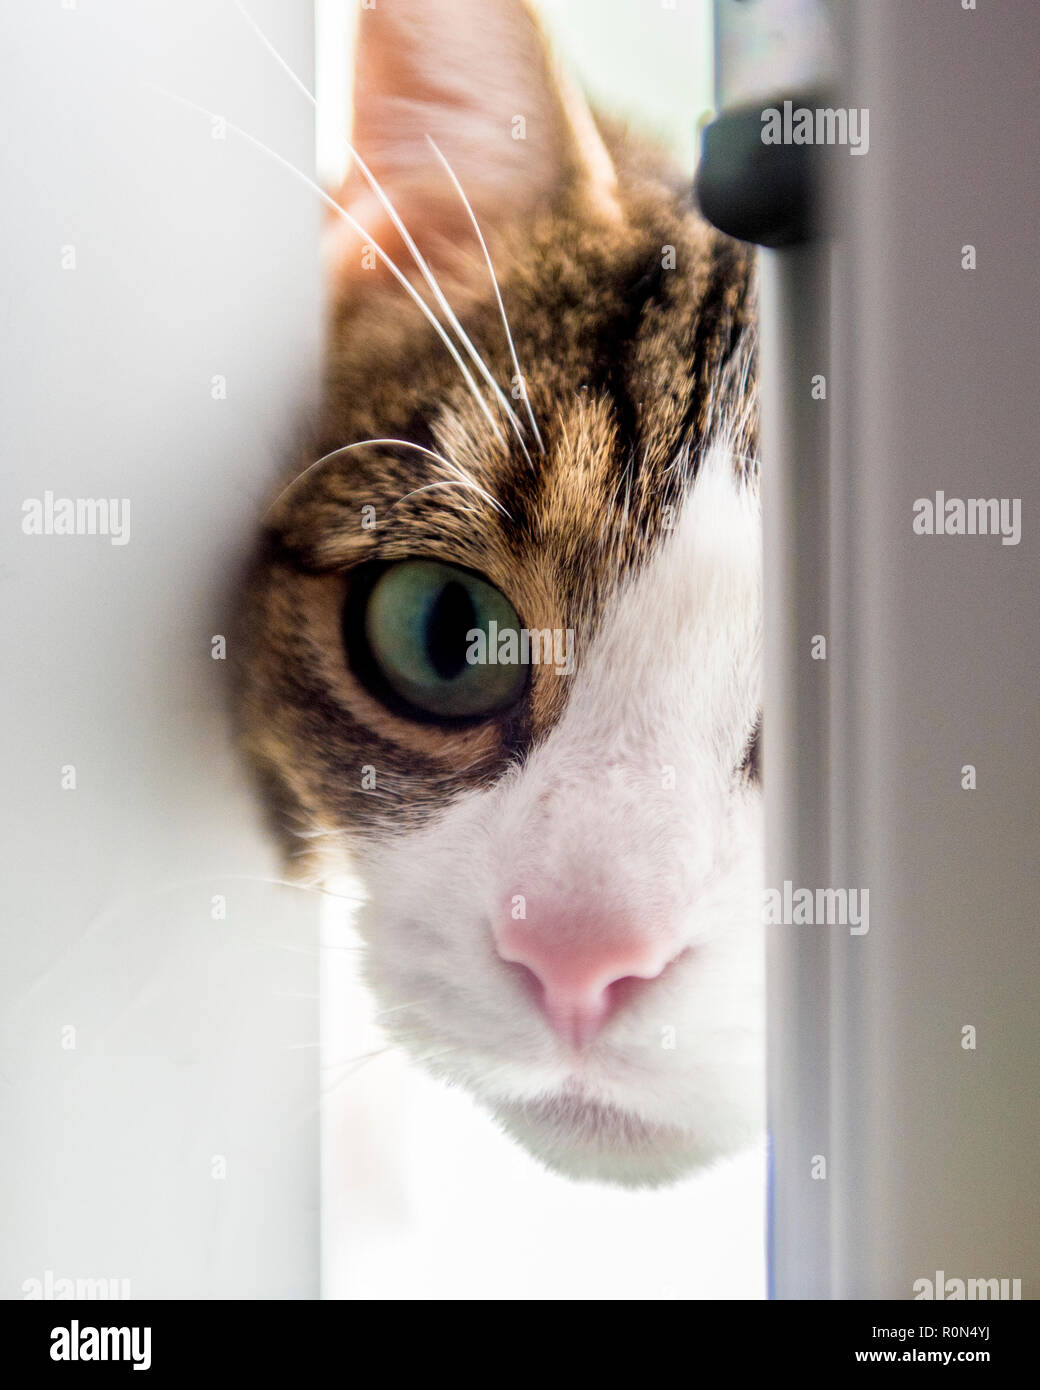 curious cat looking through door - Stock Image